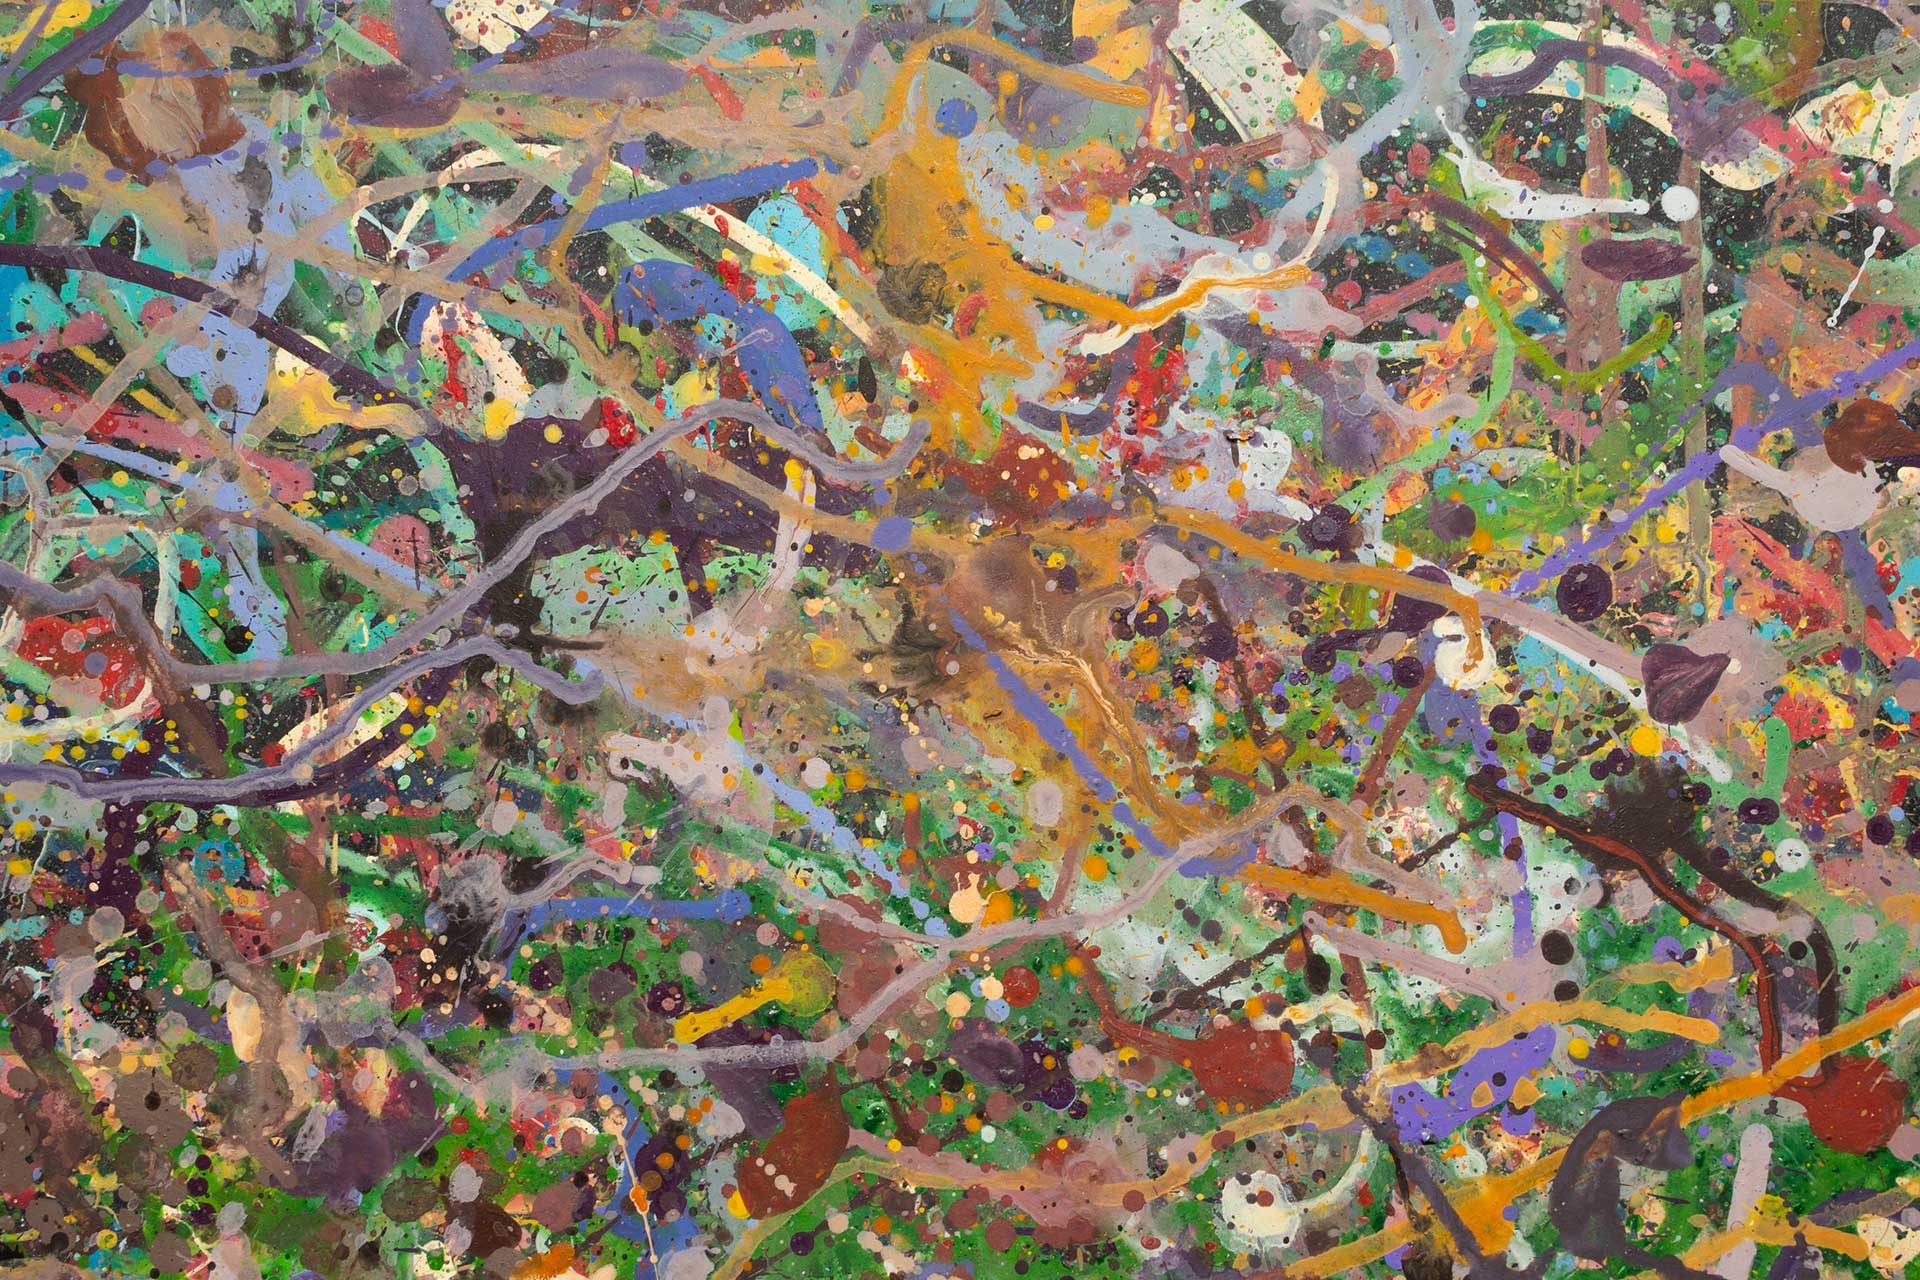 Abstract expressionism painting - Field of flowers - Yarra Glen #1 - Detail 4